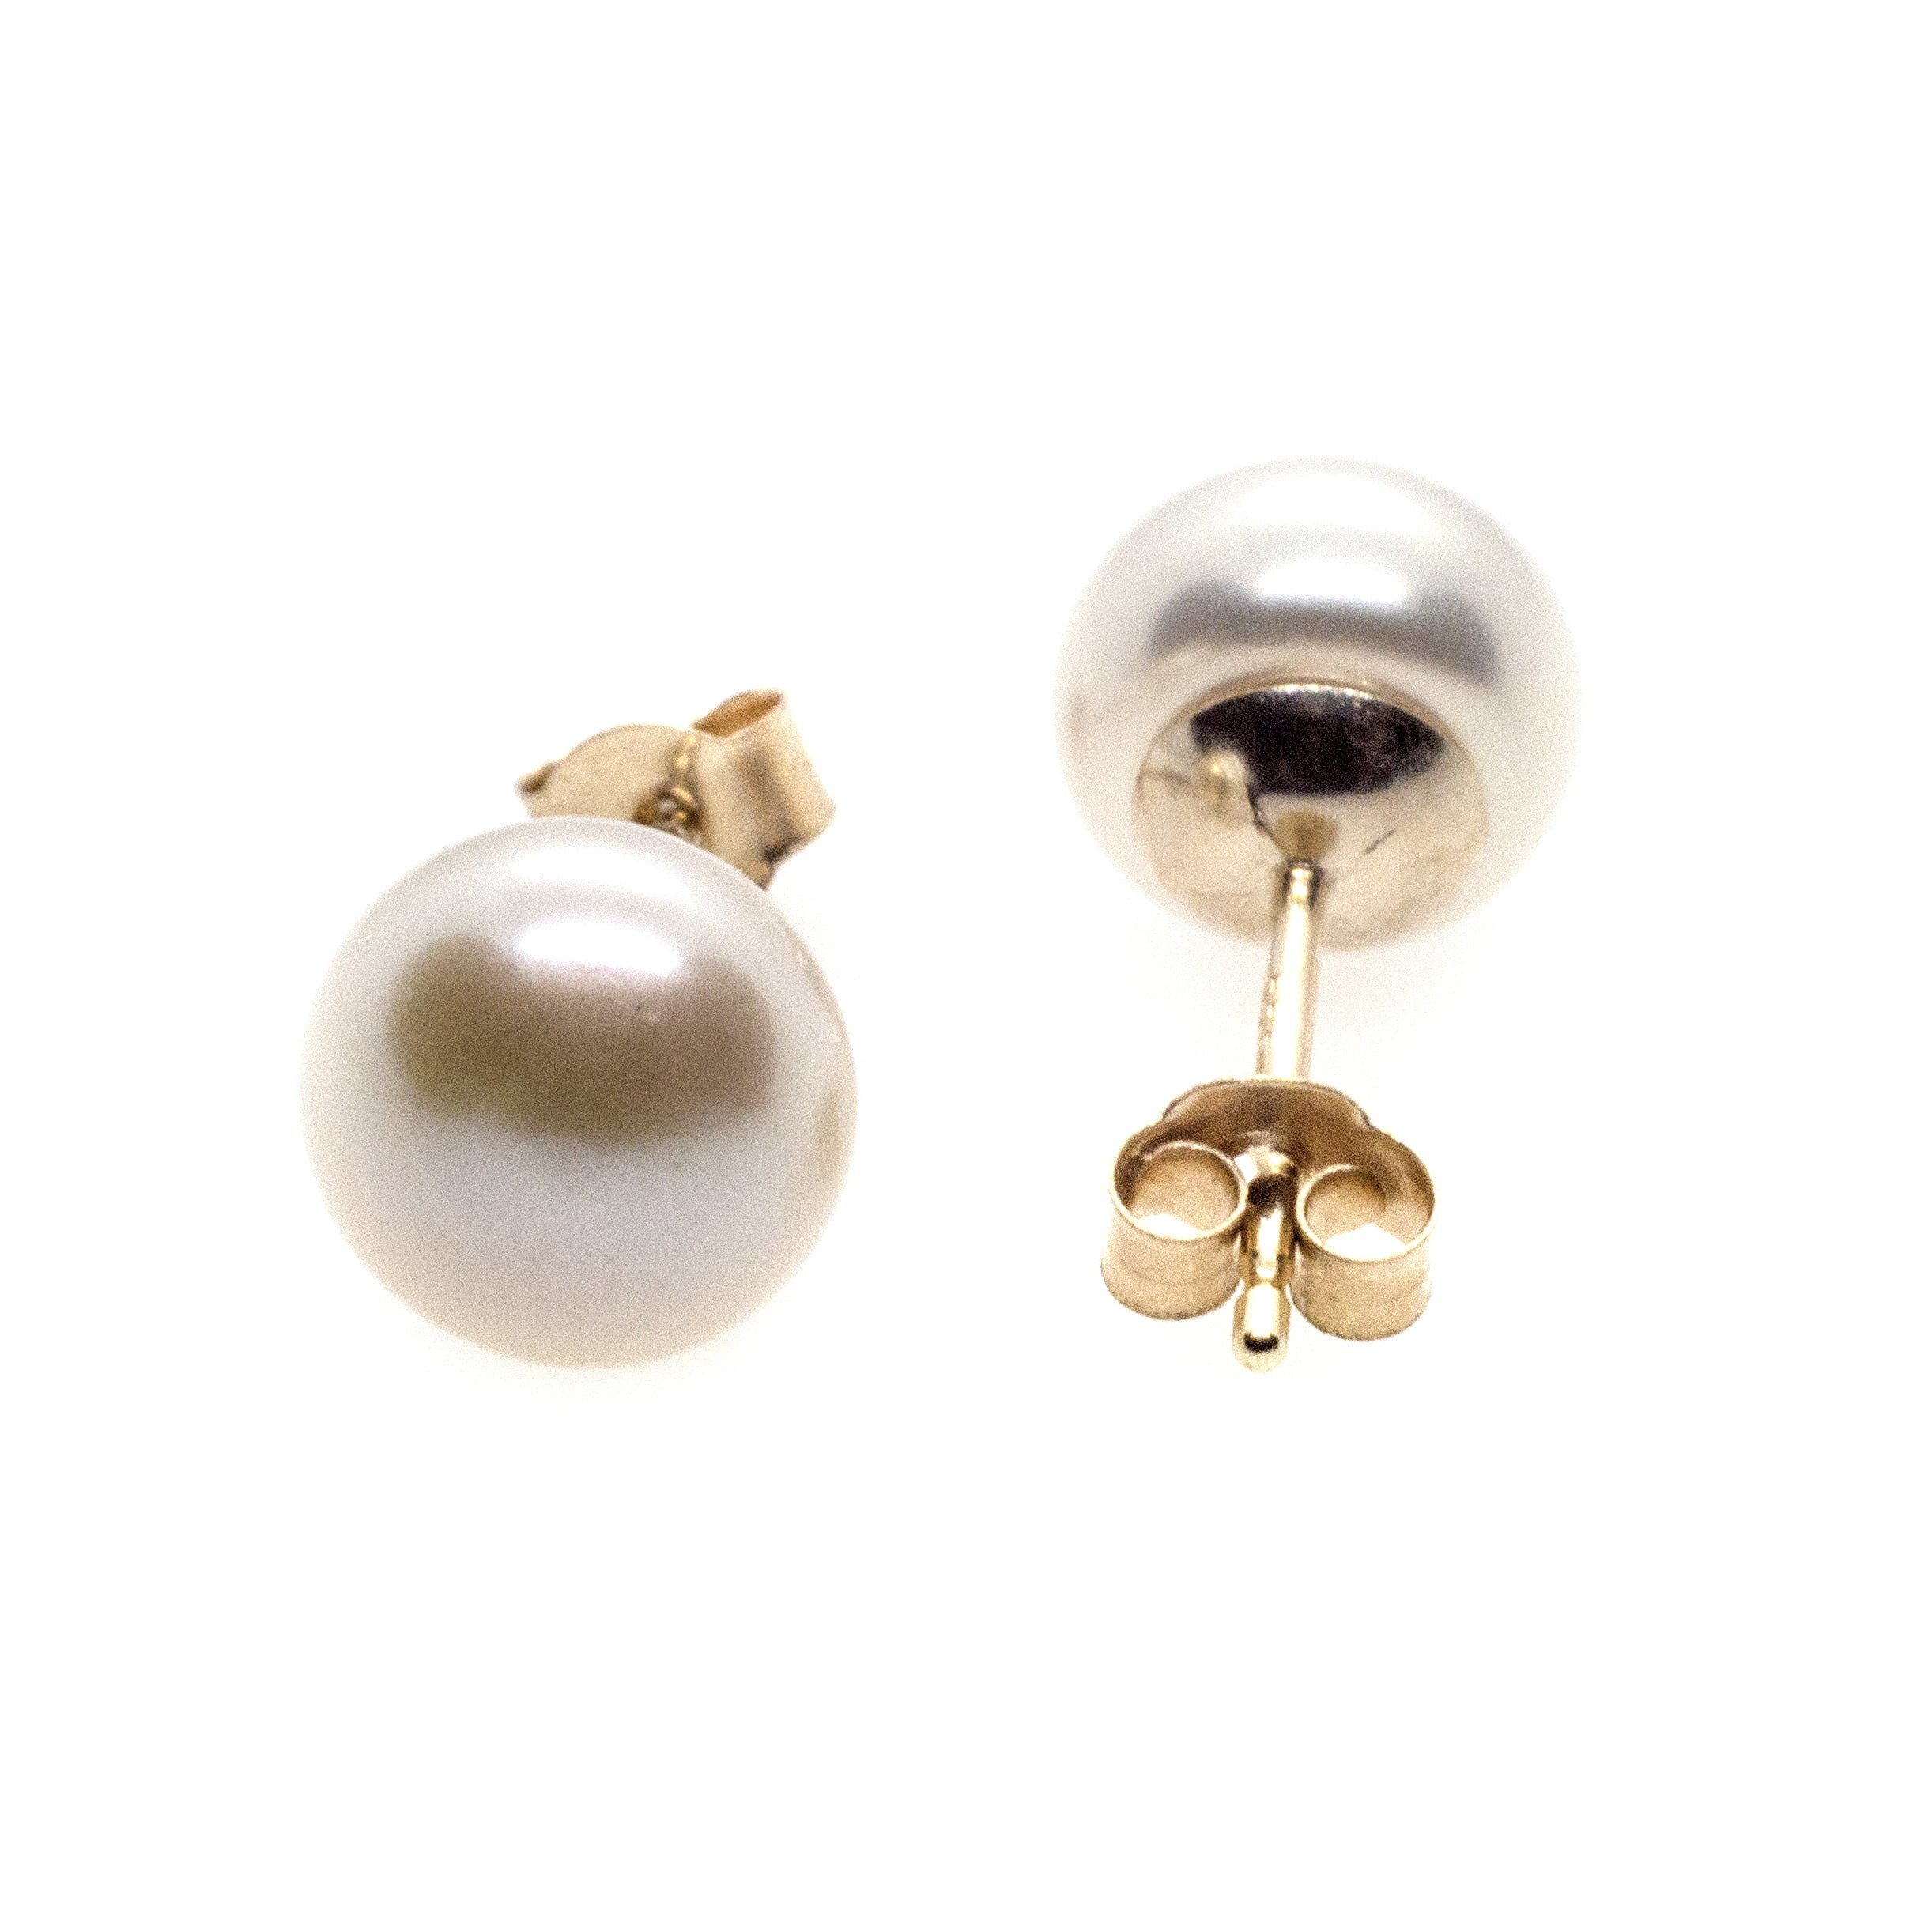 7mm fresh water pearl stud earrings 9ct yellow gold alt 6